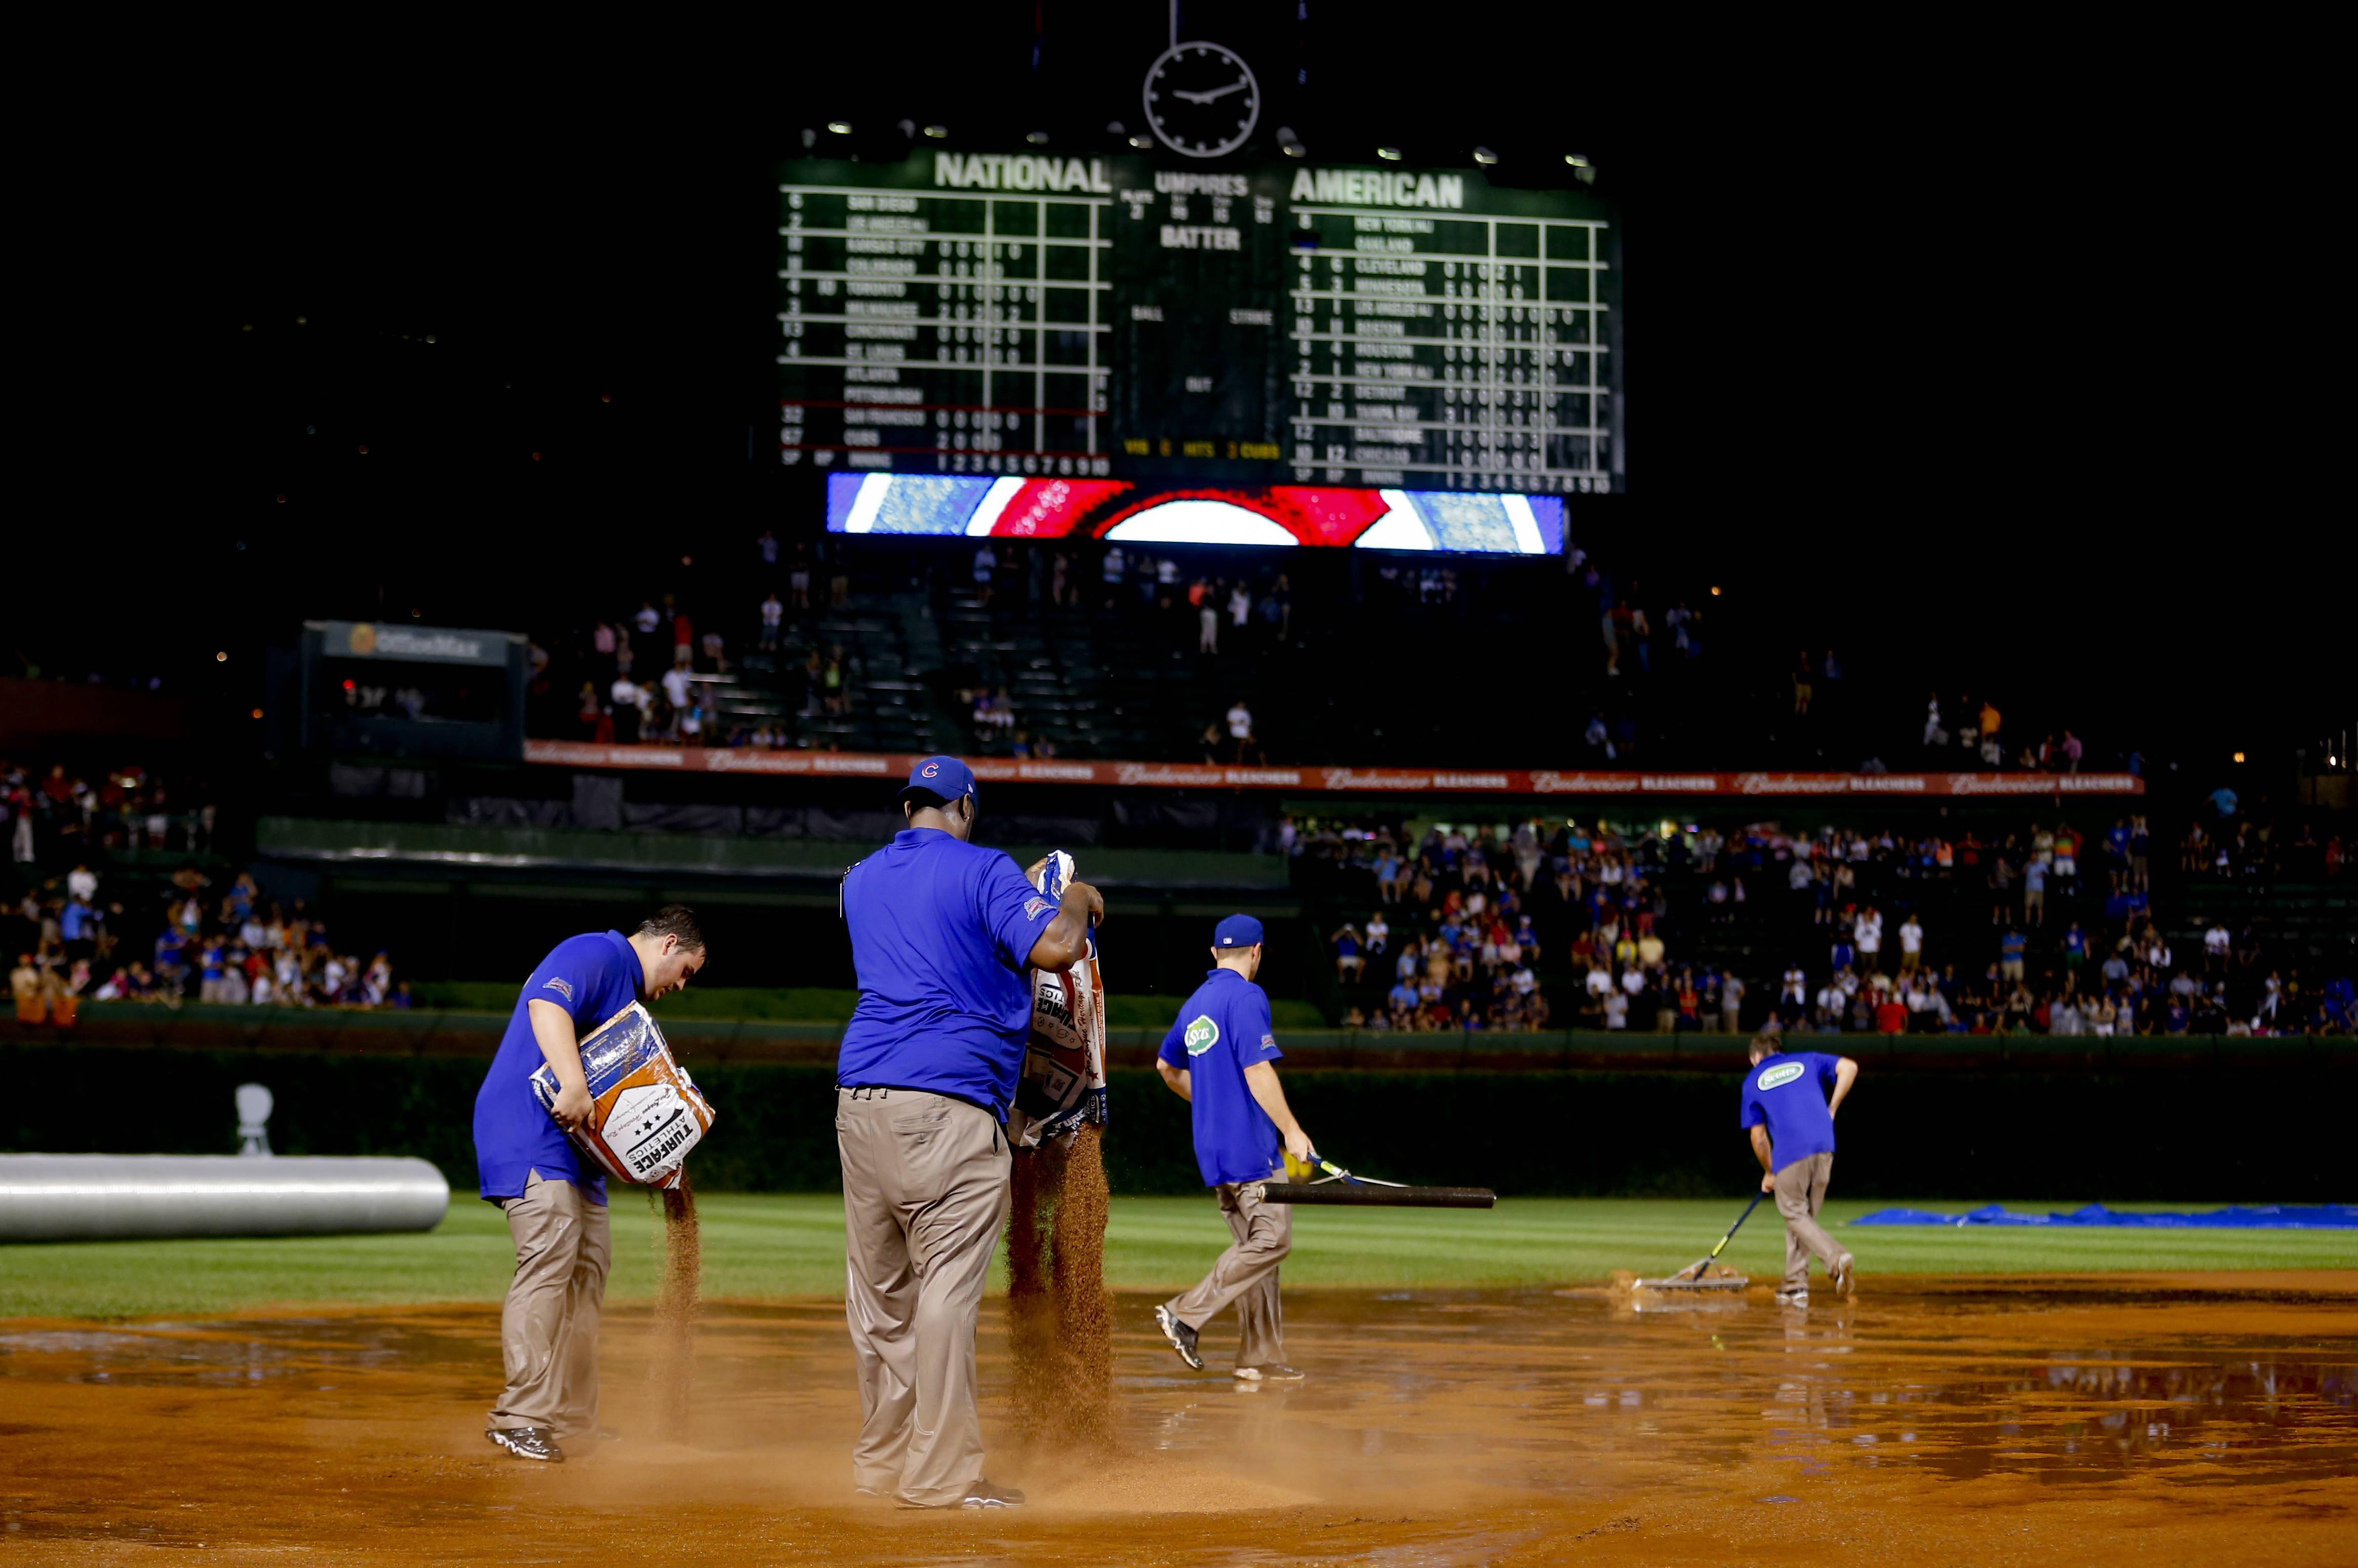 The grounds crew works on the field after a heavy rain soaked Wrigley Field during the fifth inning of a baseball game between the San Francisco Giants and the Chicago Cubs on Tuesday in Chicago. The Giants launched a successful protest after the Cubs were declared the winner. The game will resume Thursday.